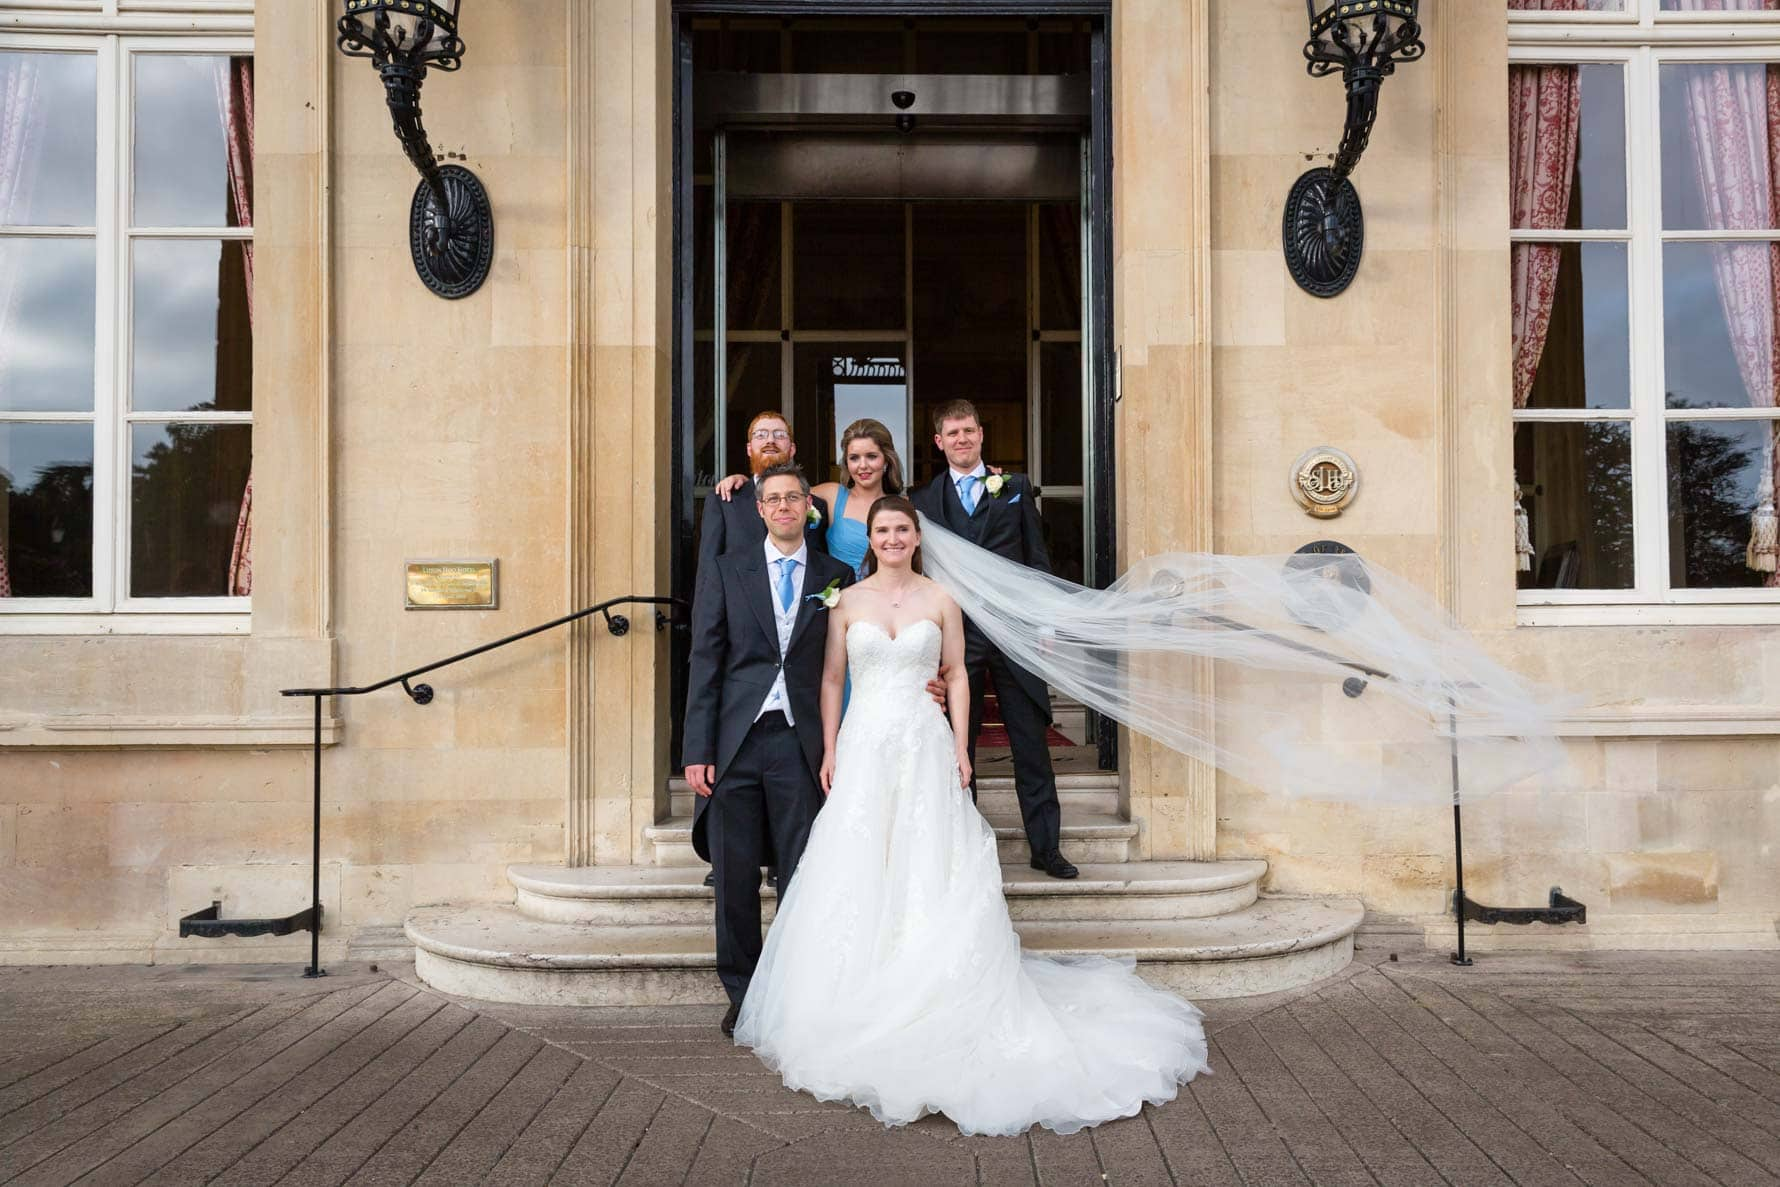 Bridal party on steps at Luton Hoo Hotel by Bedfordshire wedding photographer Graham Warrellow